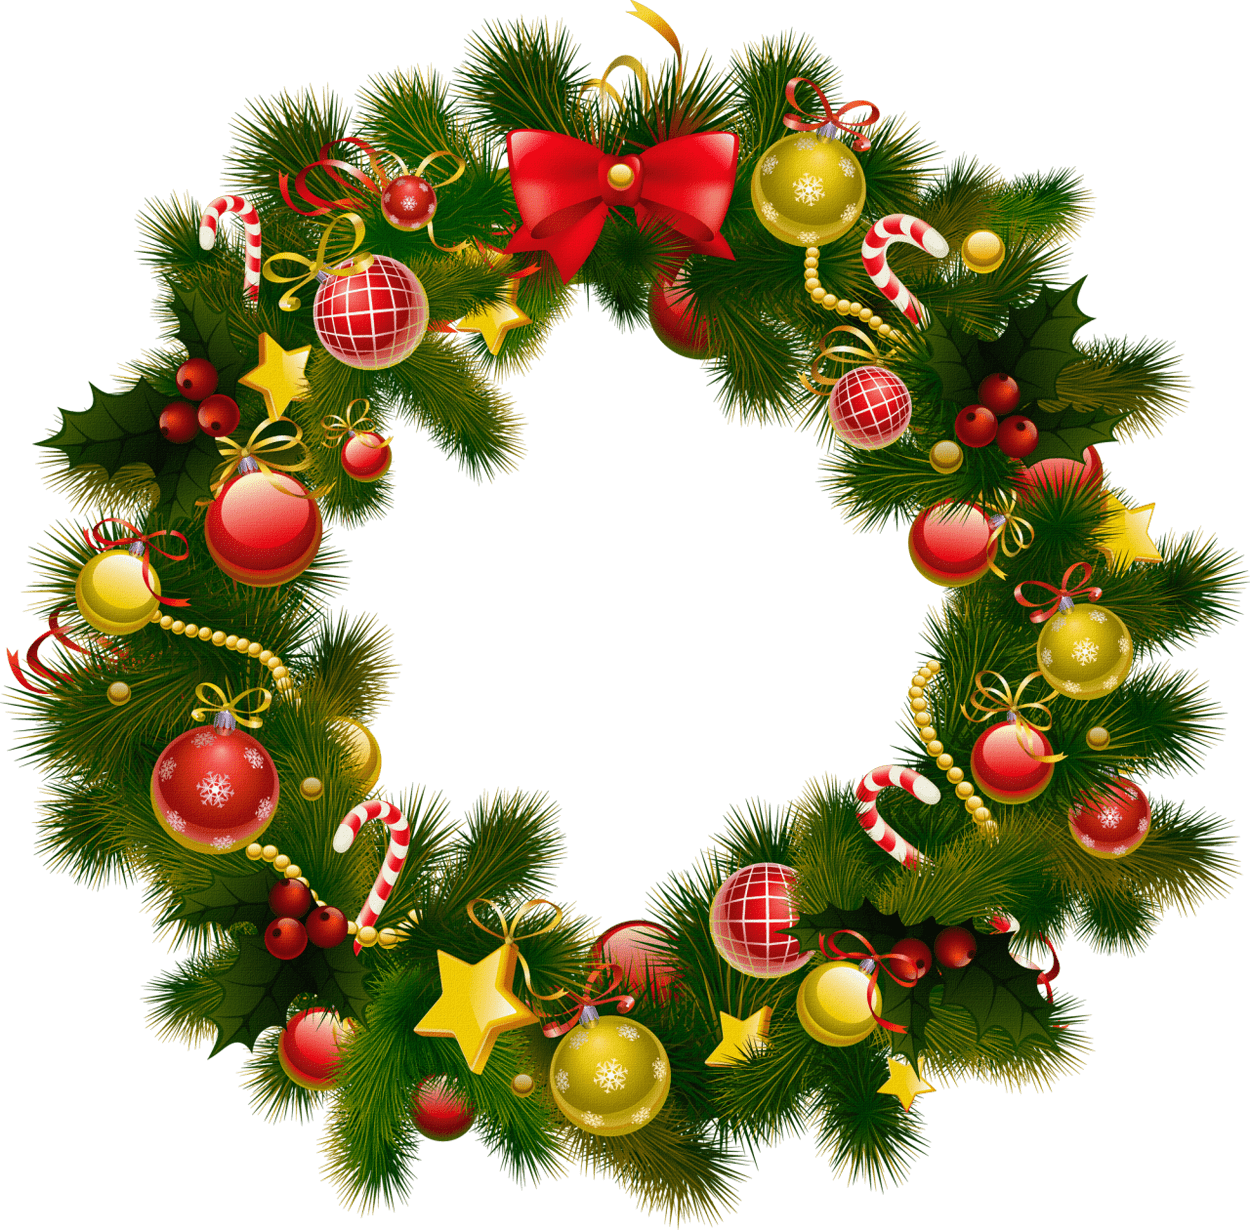 Simple Christmas Wreath - Christmas Wreath Frame Png (1250x1230), Png Download